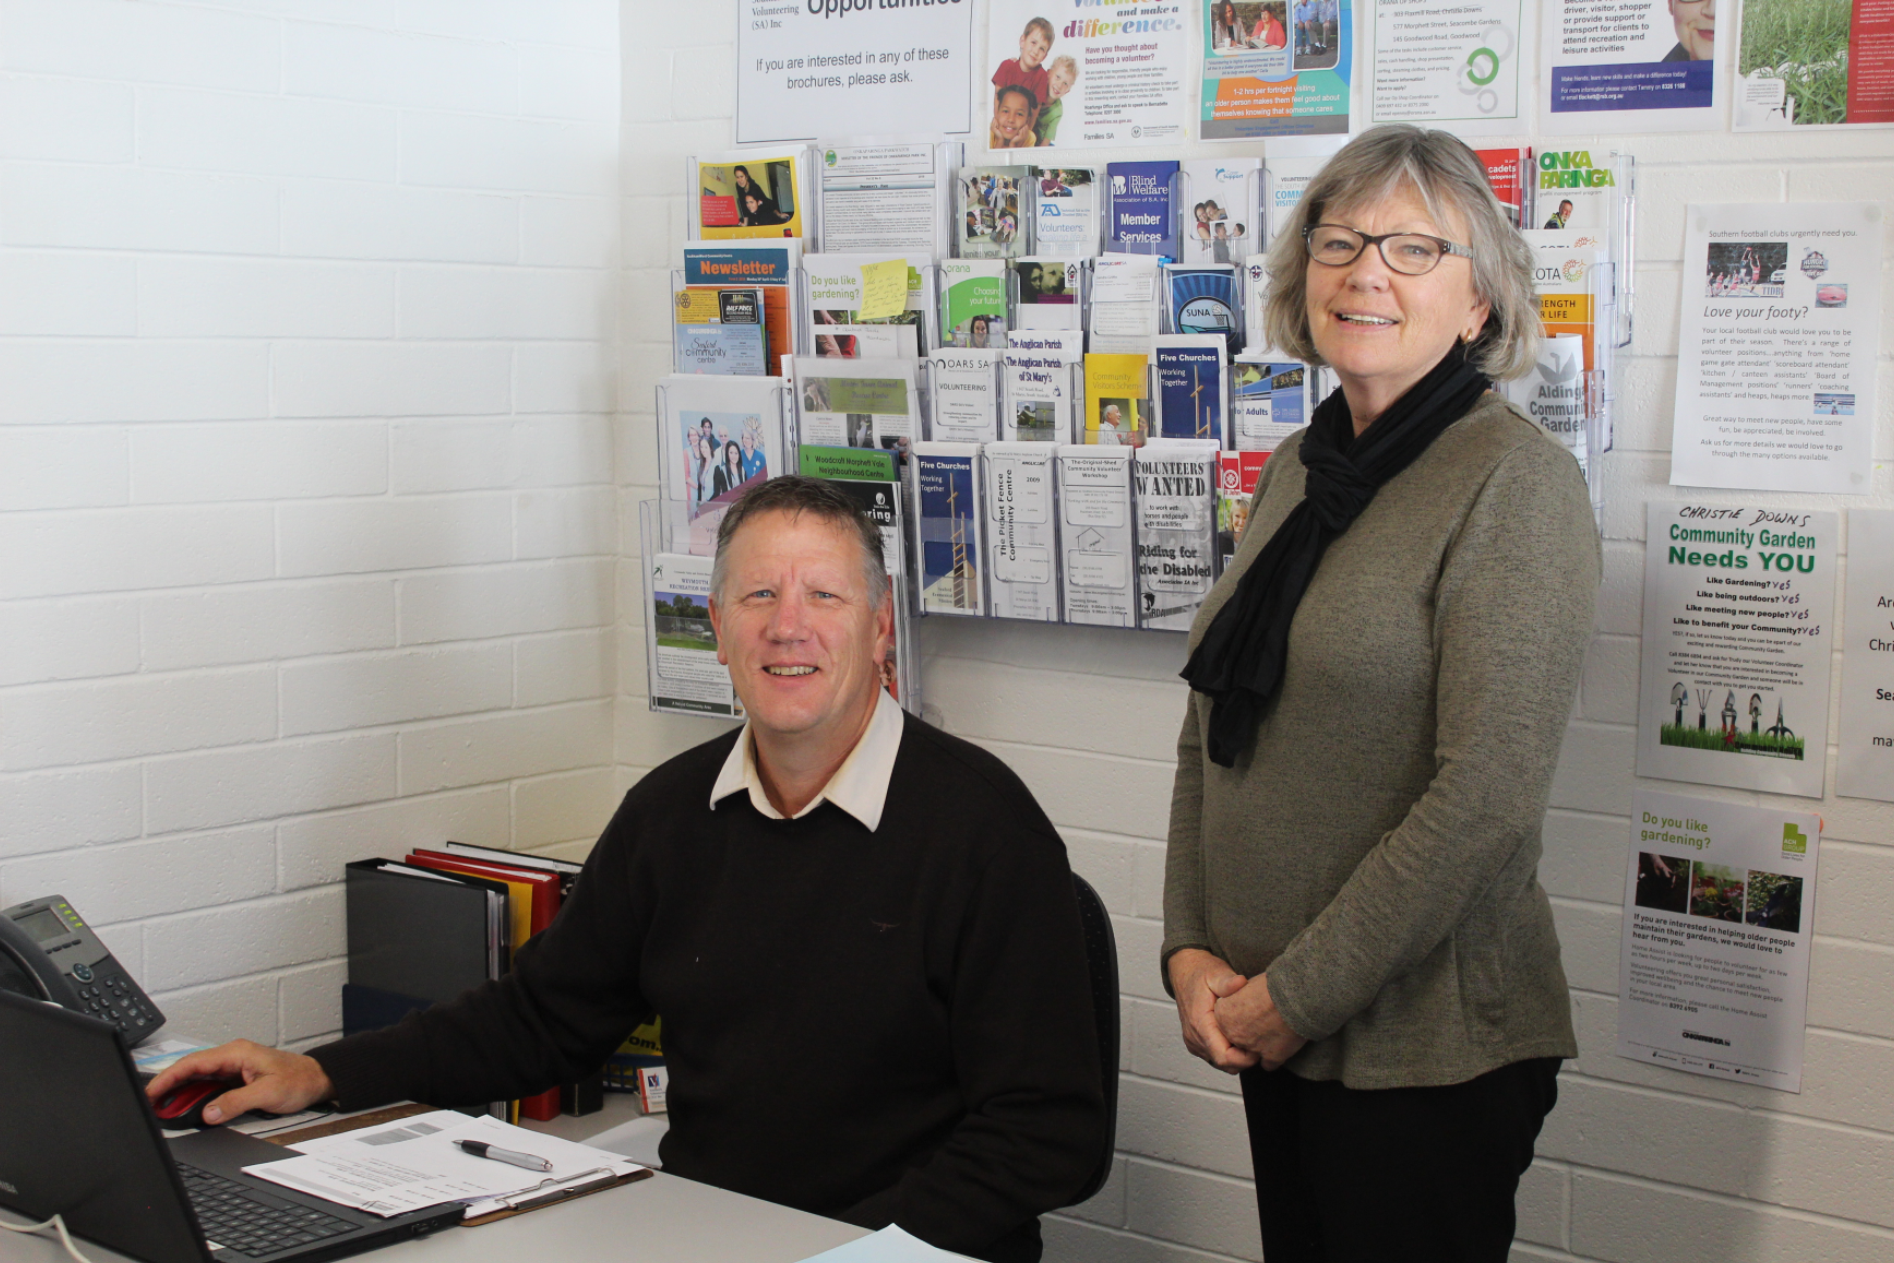 Gayle and Barry from Southern Volunteering (SA) Inc